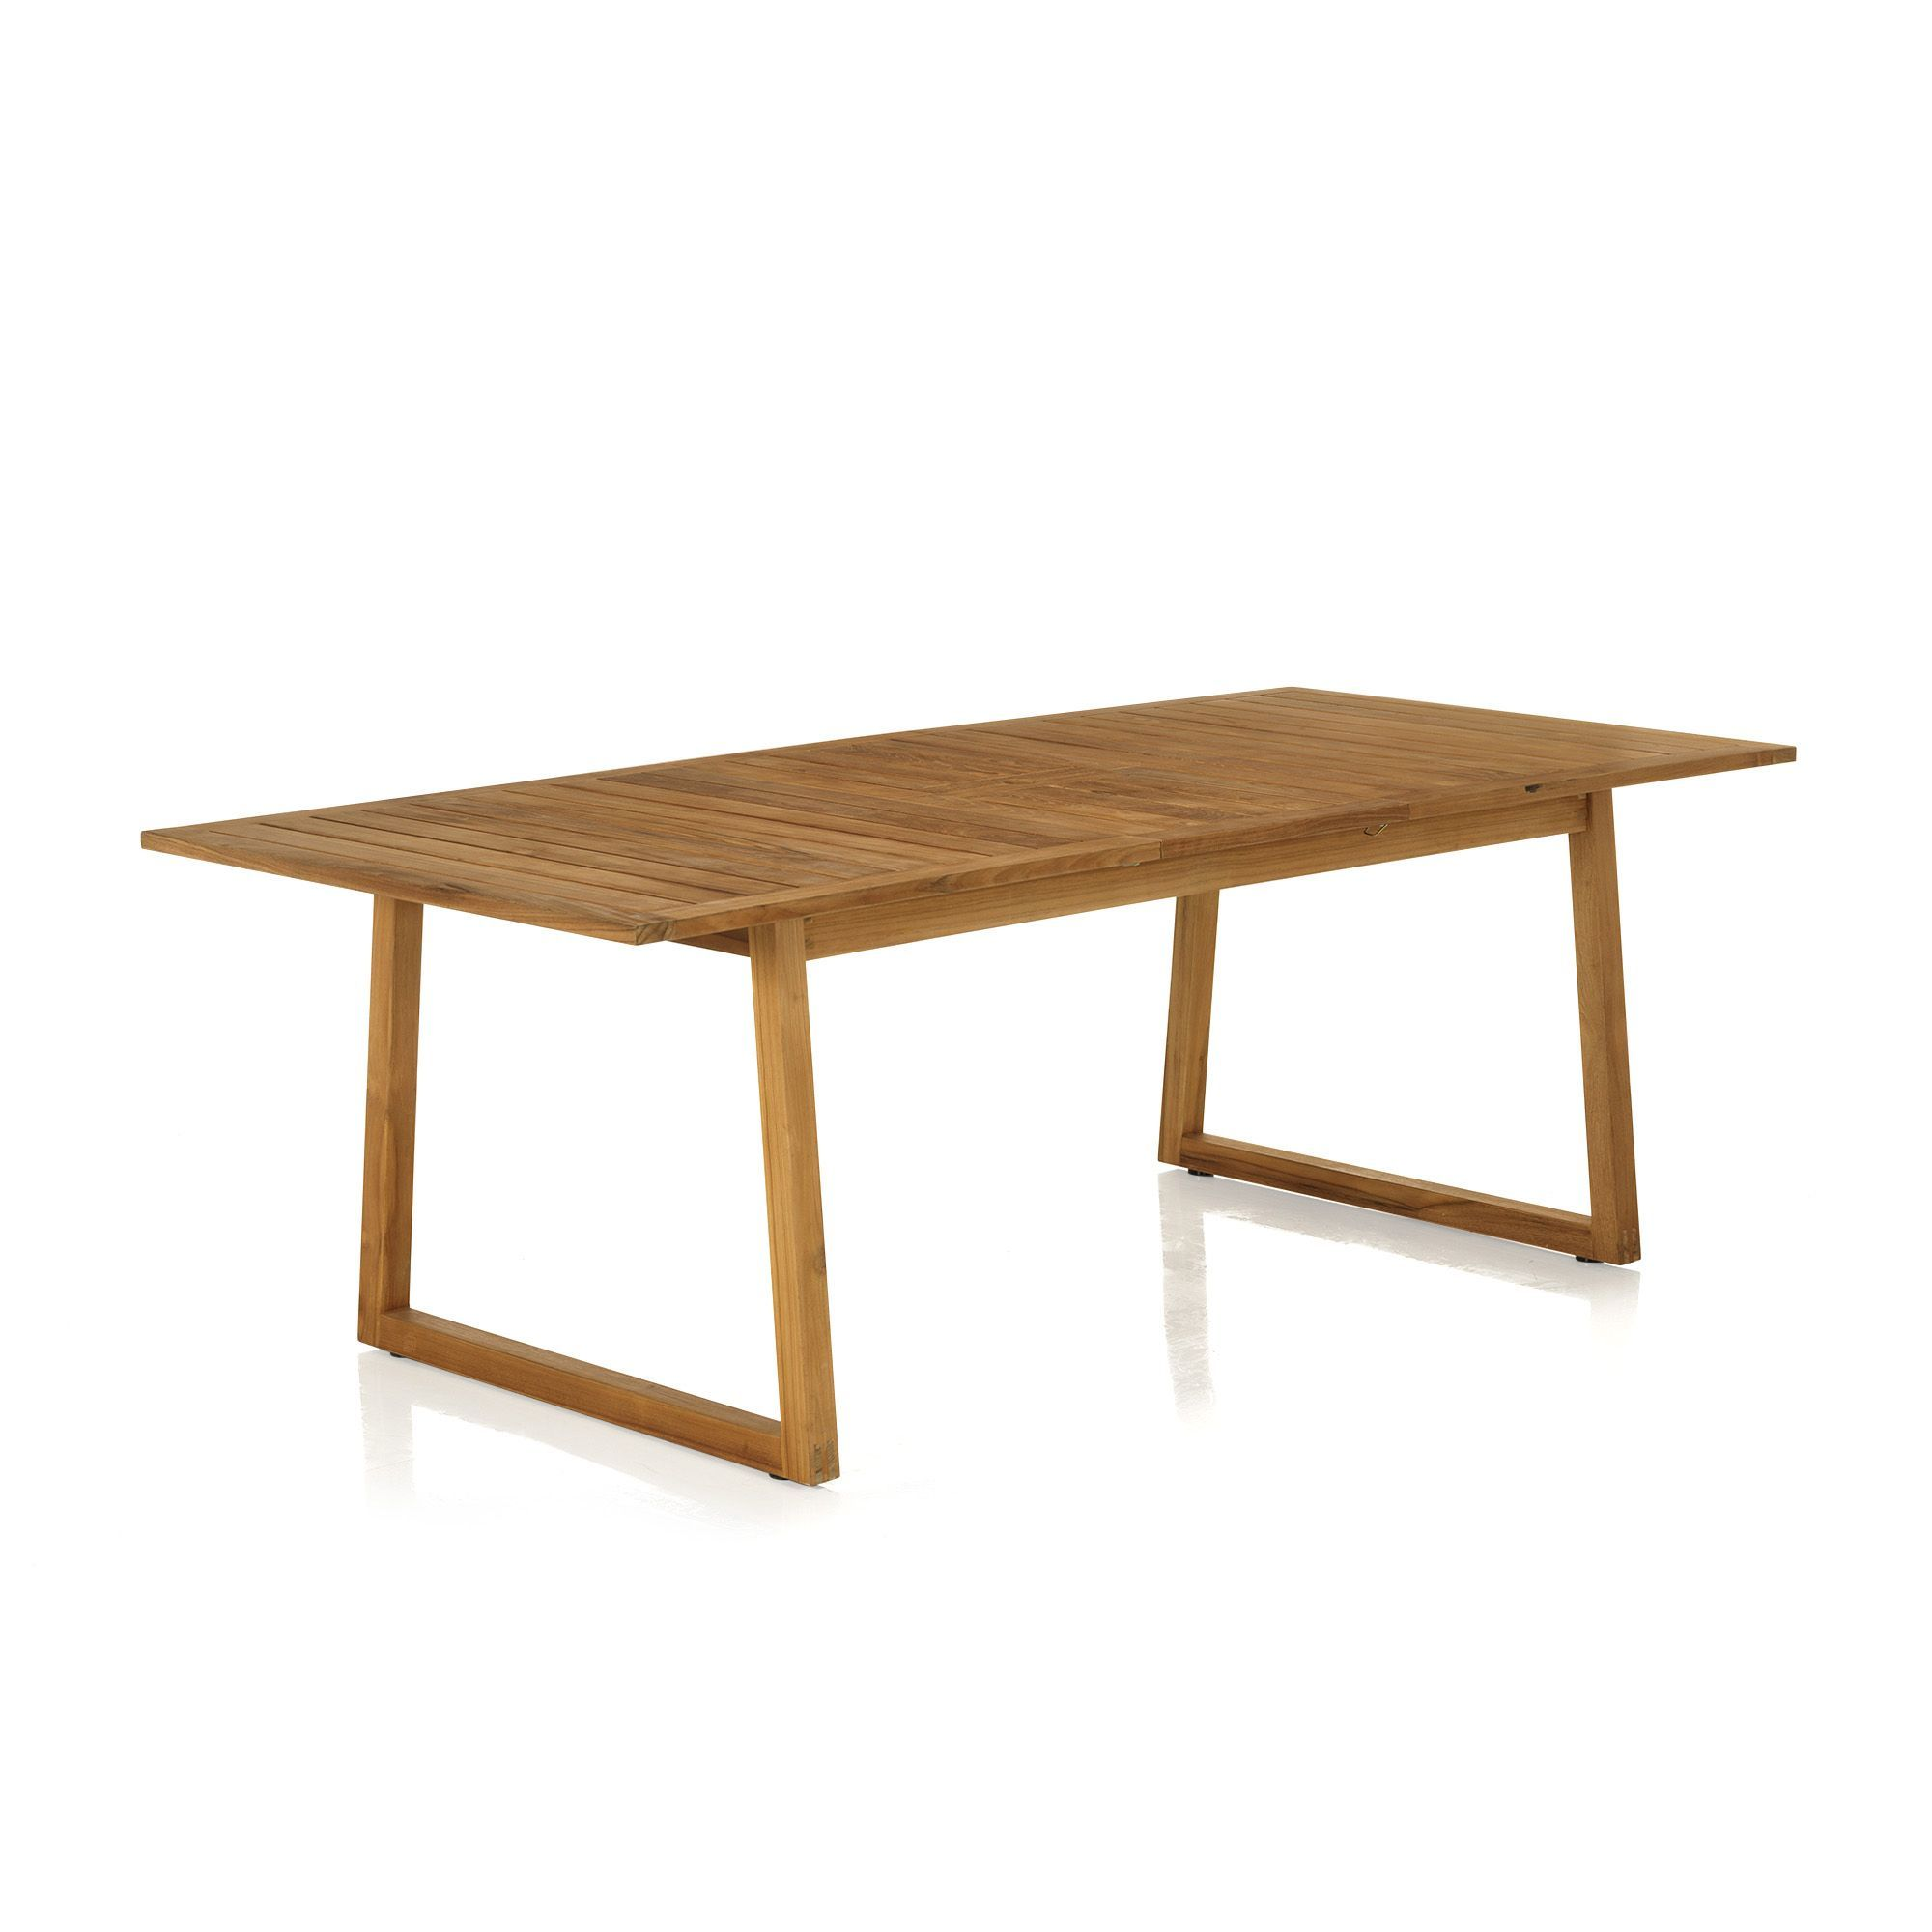 Emejing table de jardin extensible alinea contemporary for Table rectangulaire extensible